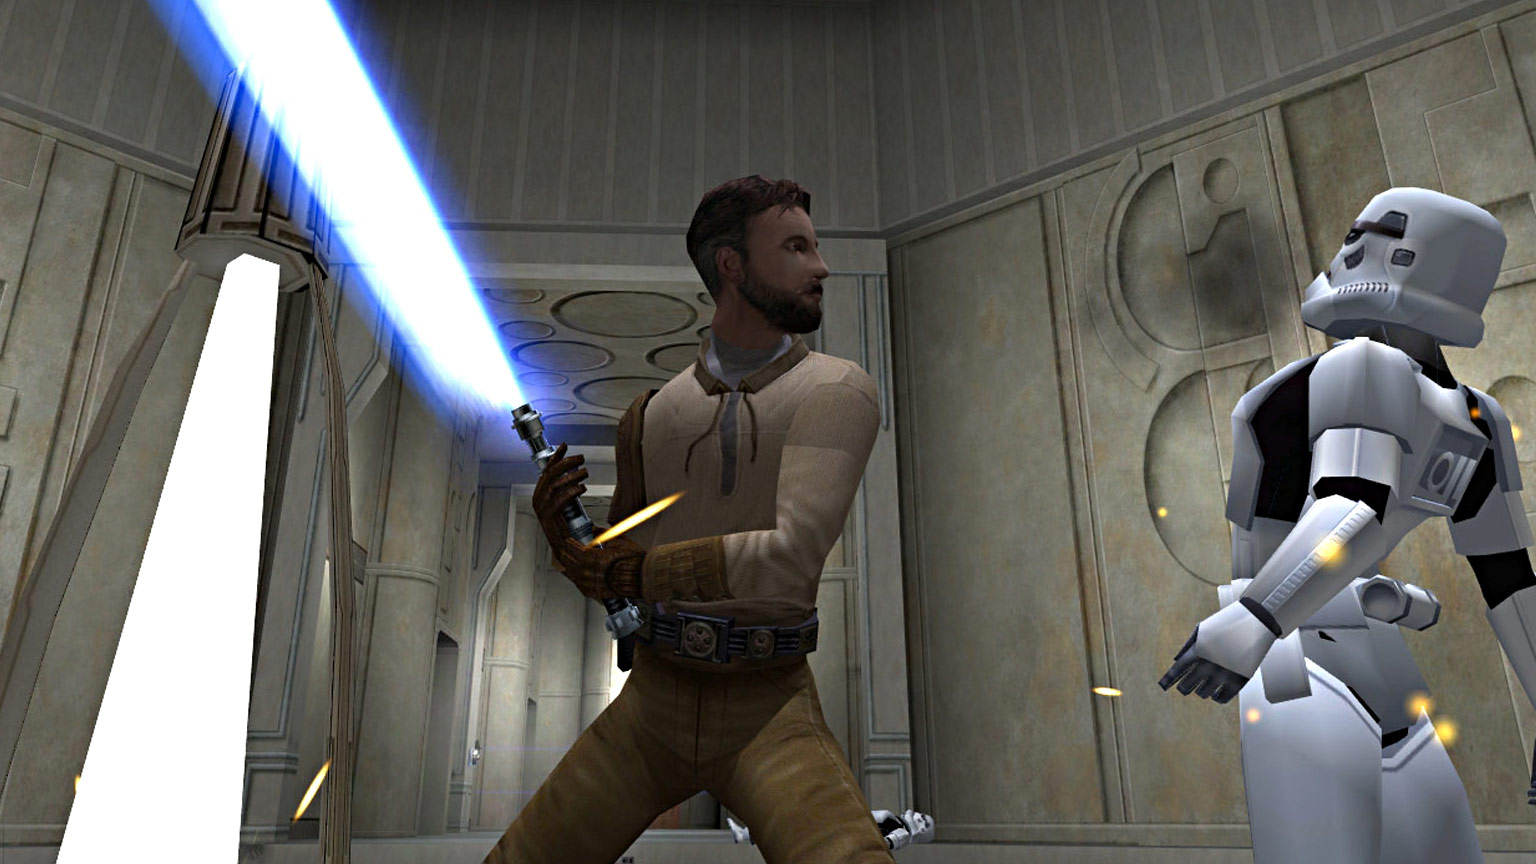 Kyle Katarn battles a stormtrooper in Star Wars Jedi Knight II: Jedi Outcast.